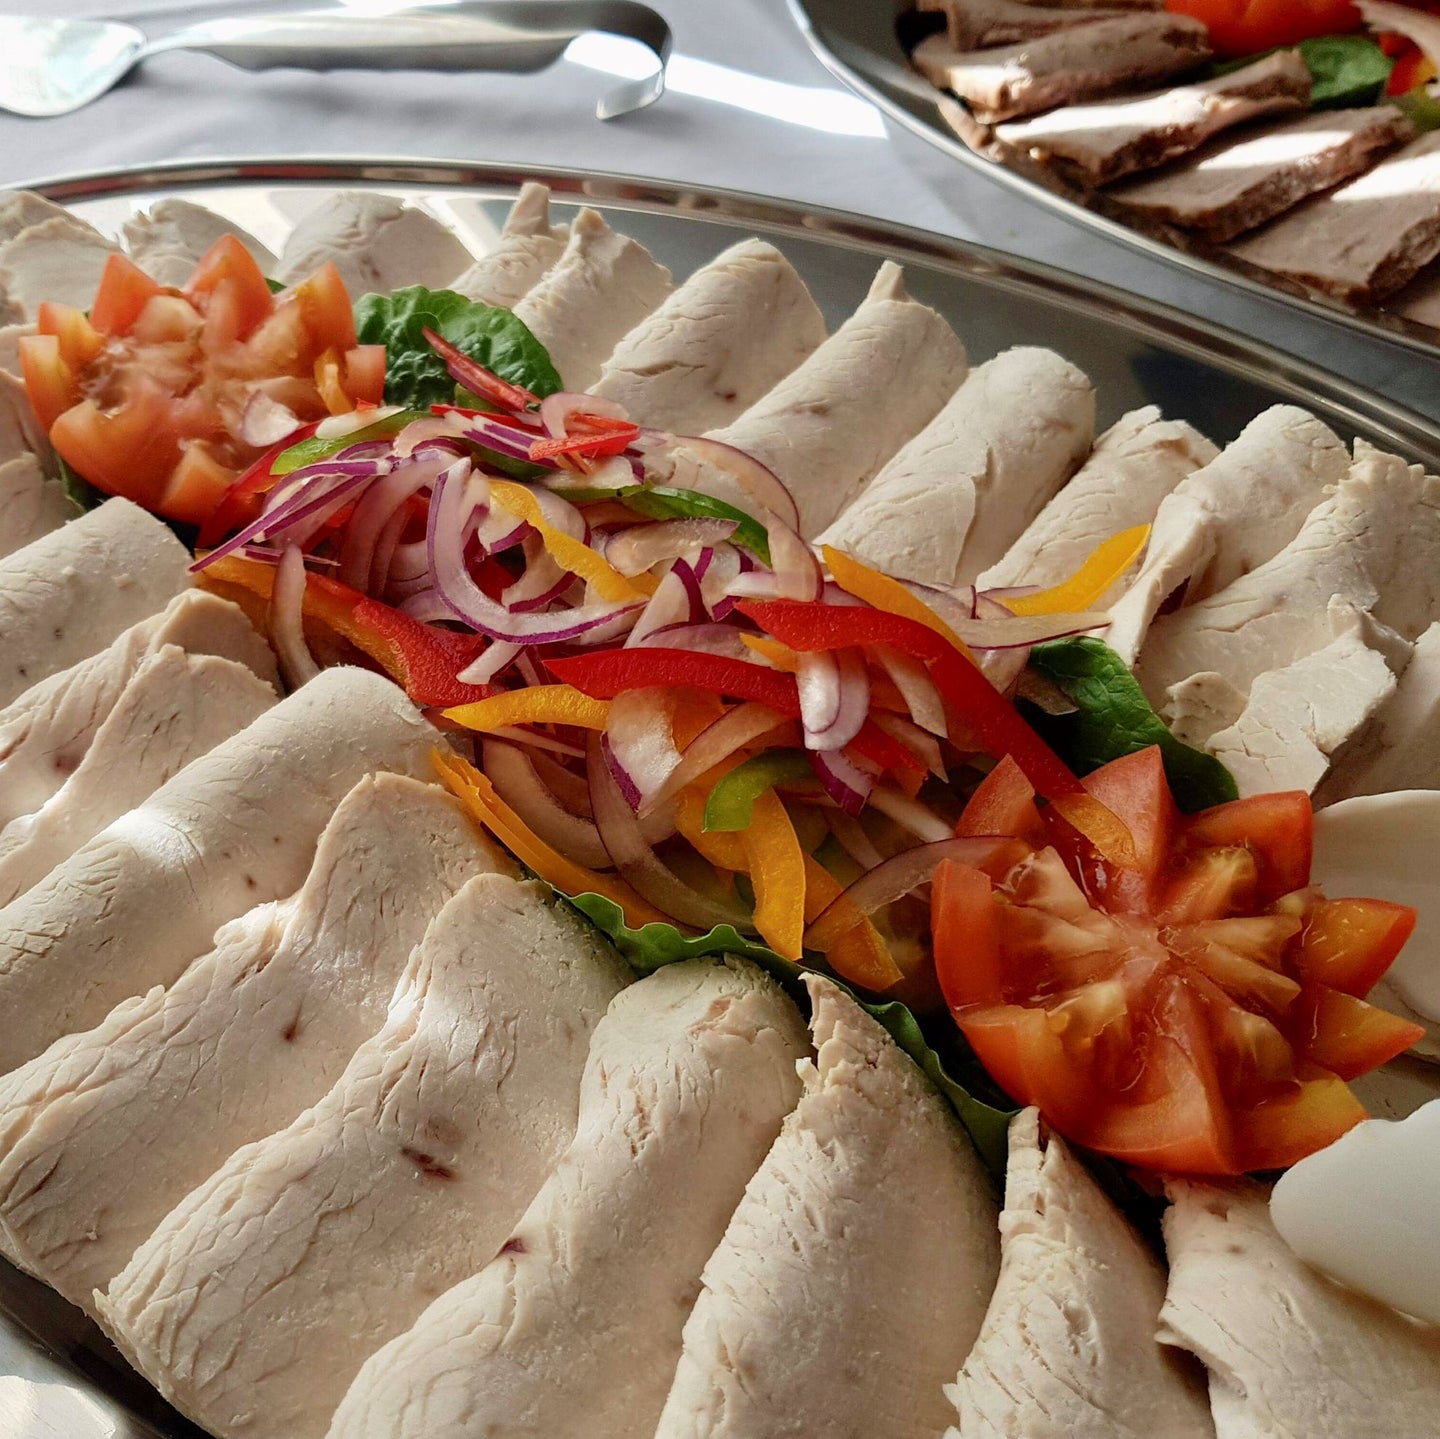 Tray of Turkey Slices